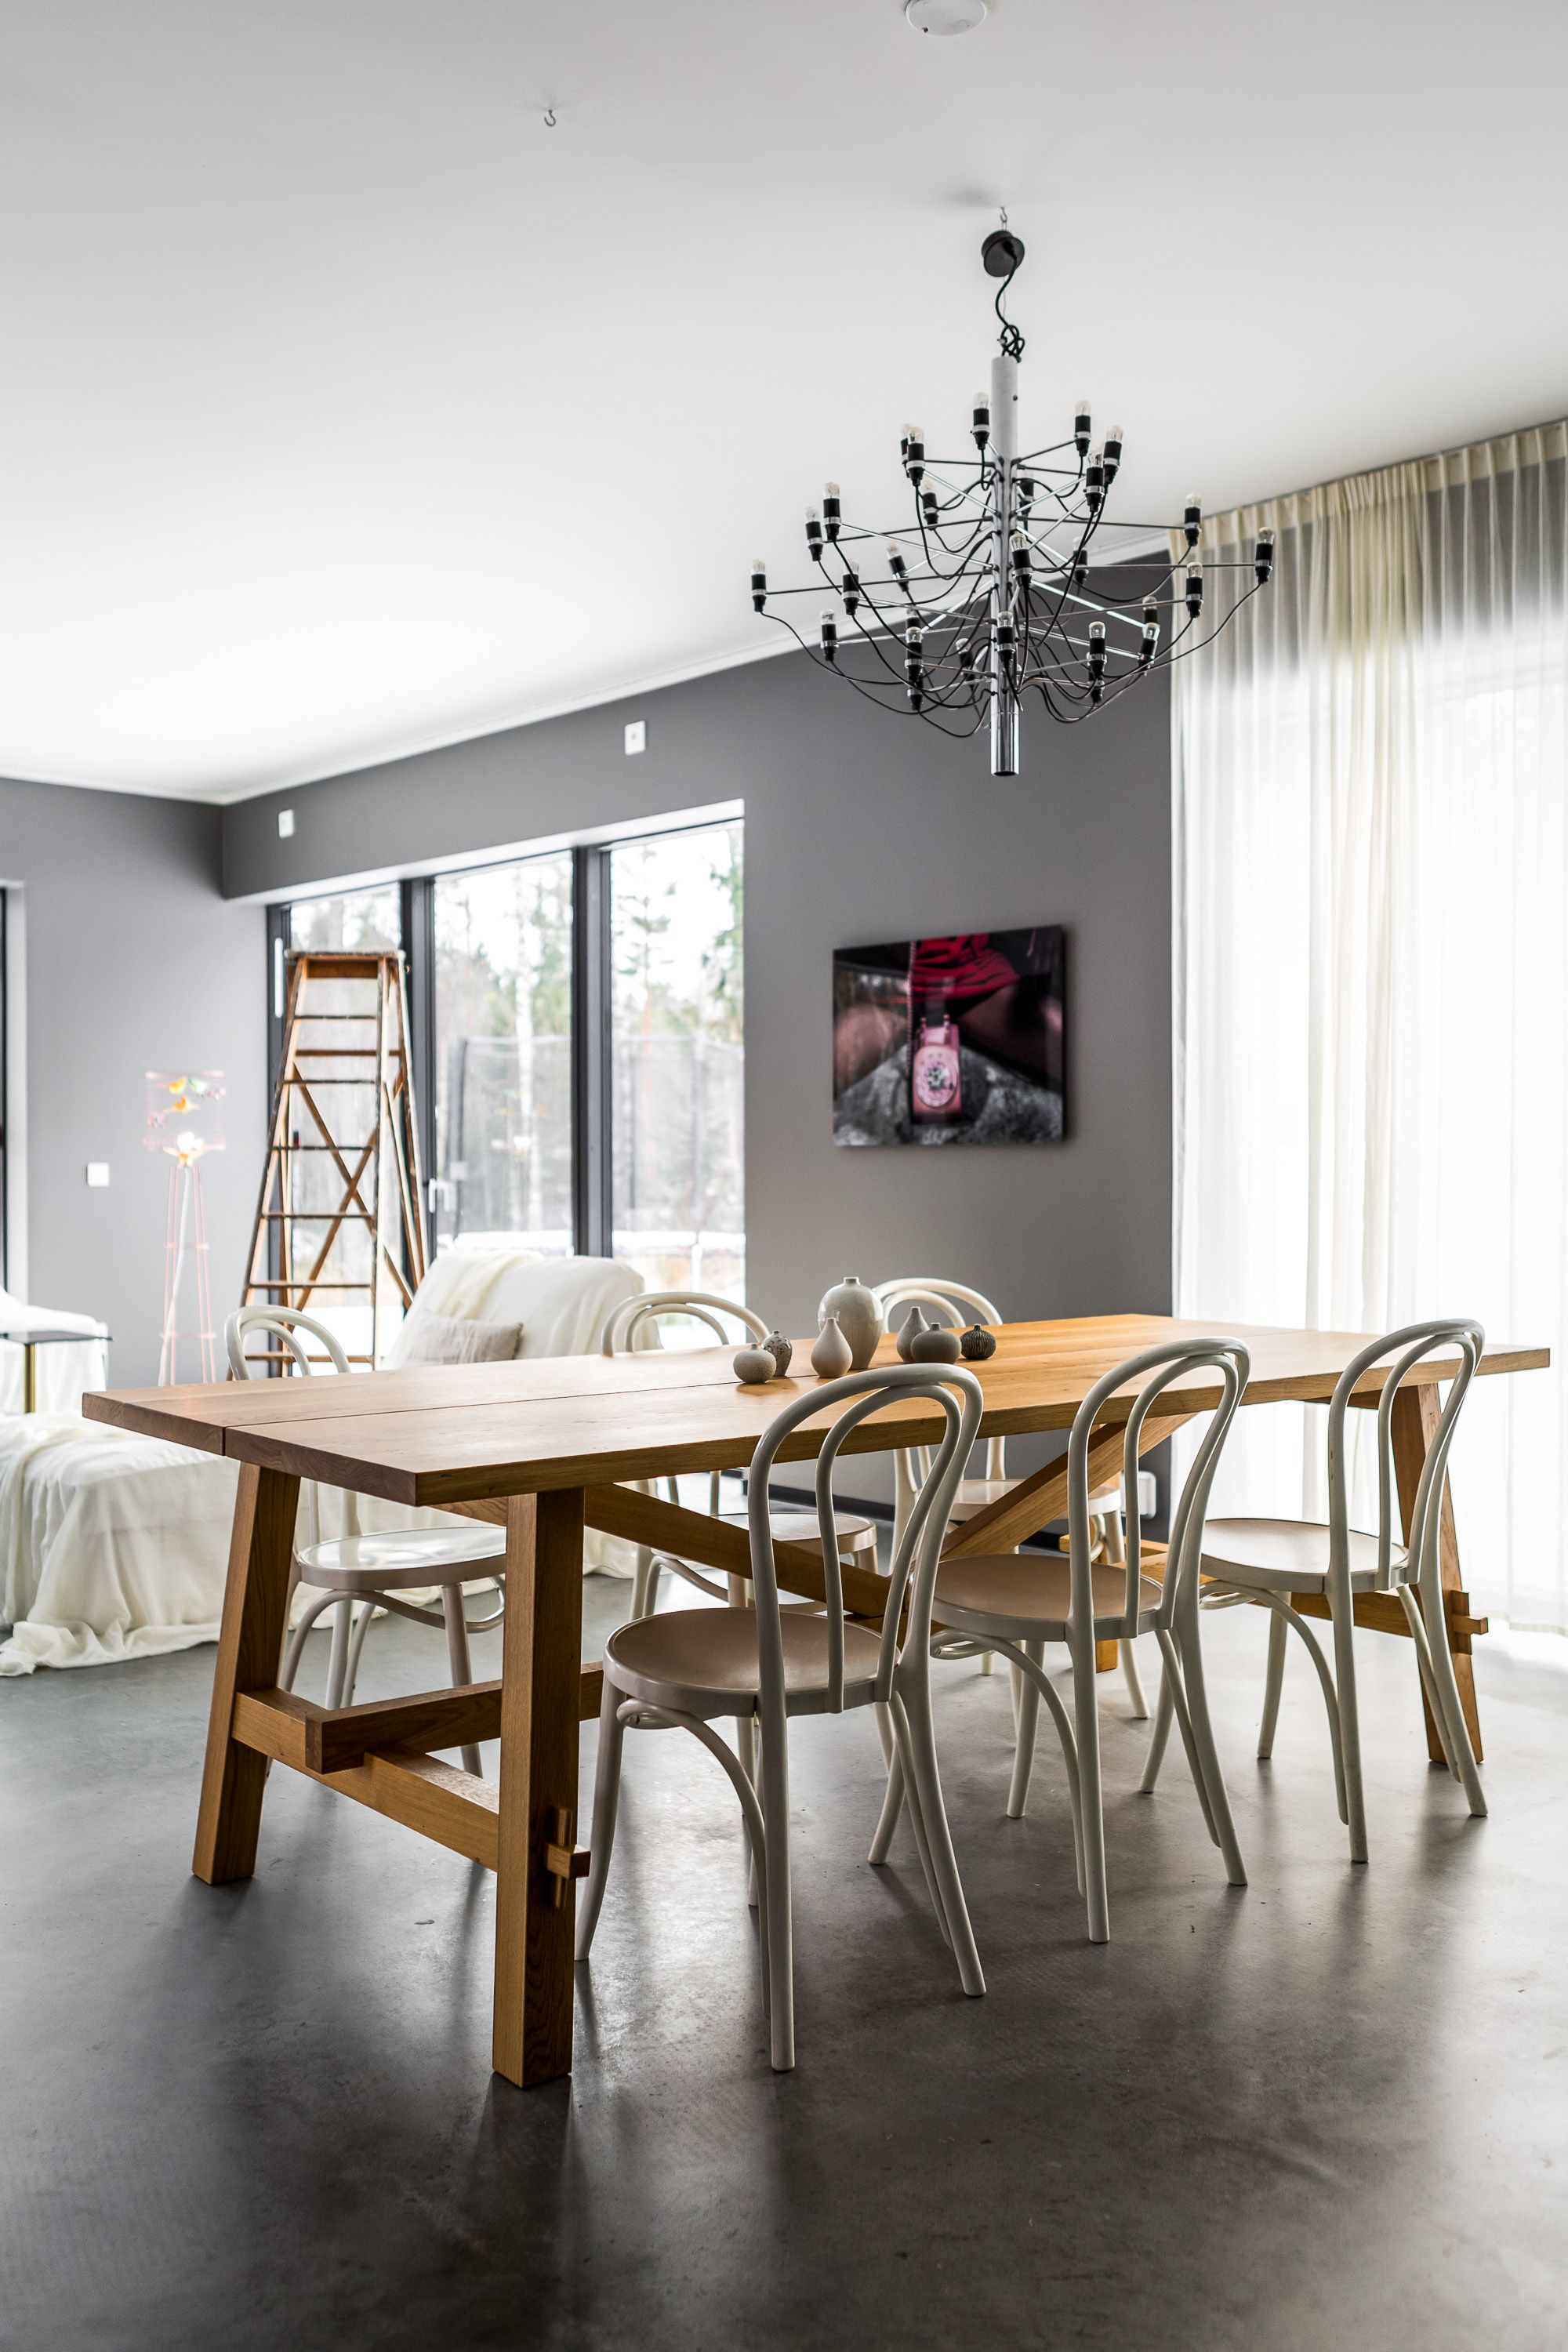 M Ckelby Dinner Table Ikea Caf Chairs Ikea Wall Art